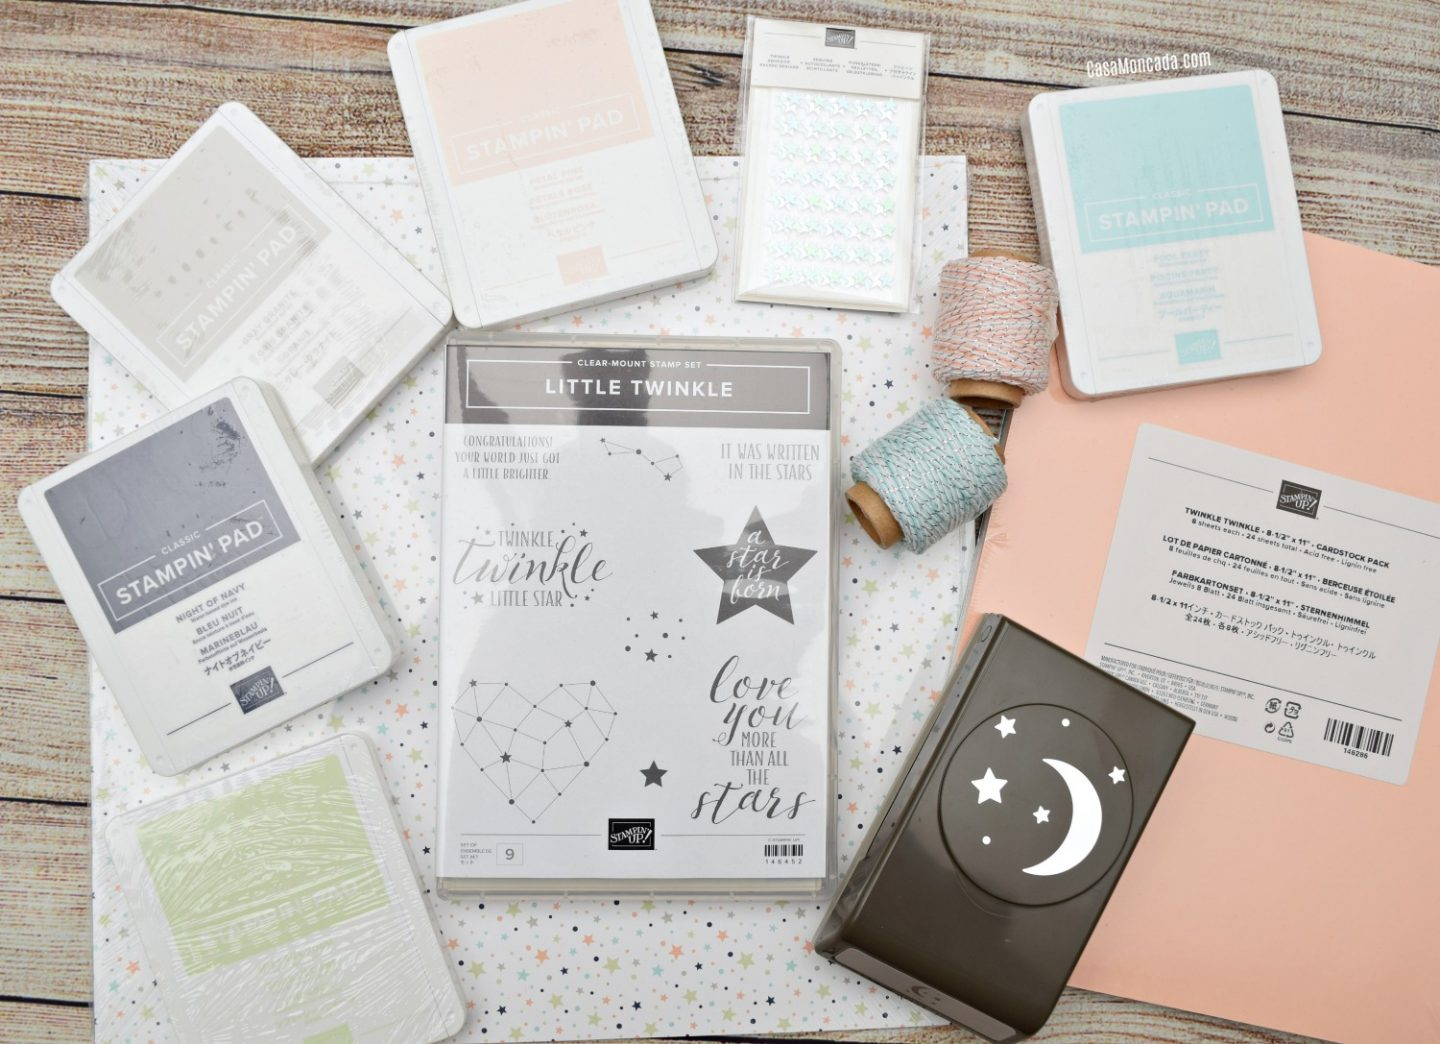 Stampin' Up! Little Twinkle suite